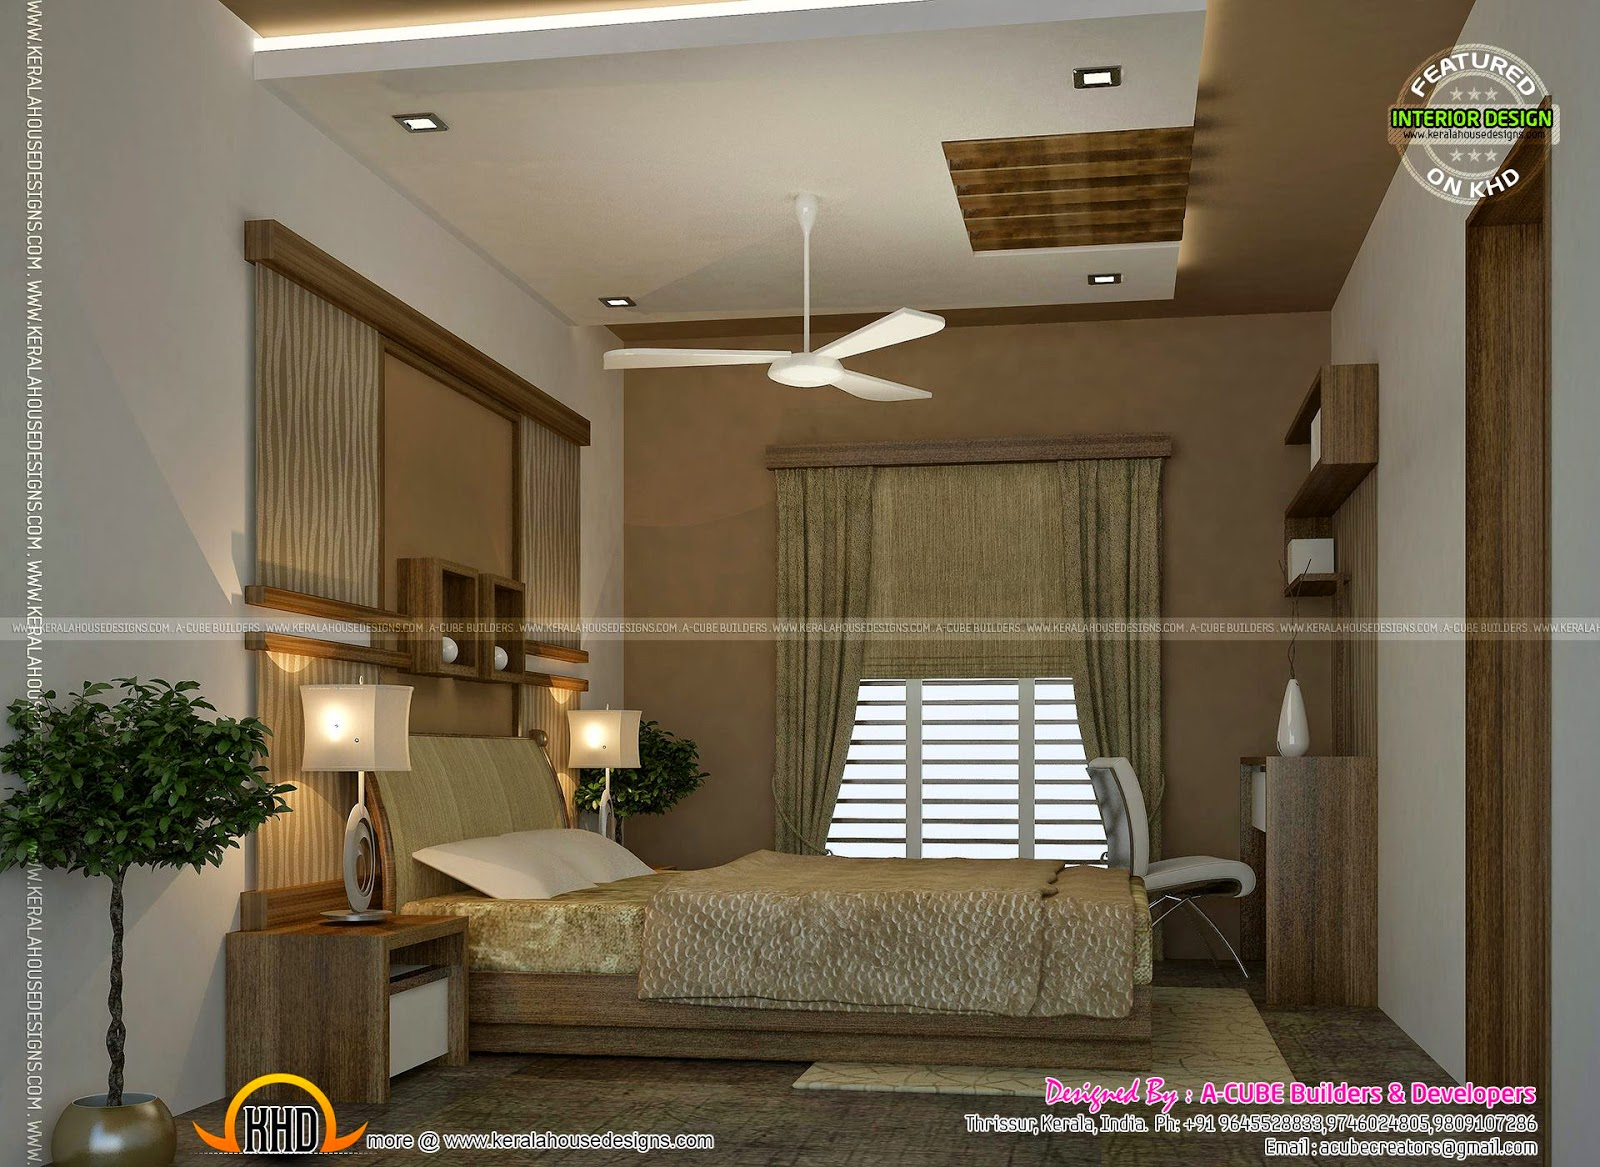 Kerala interior design ideas kerala home design and for Interior designs in kerala